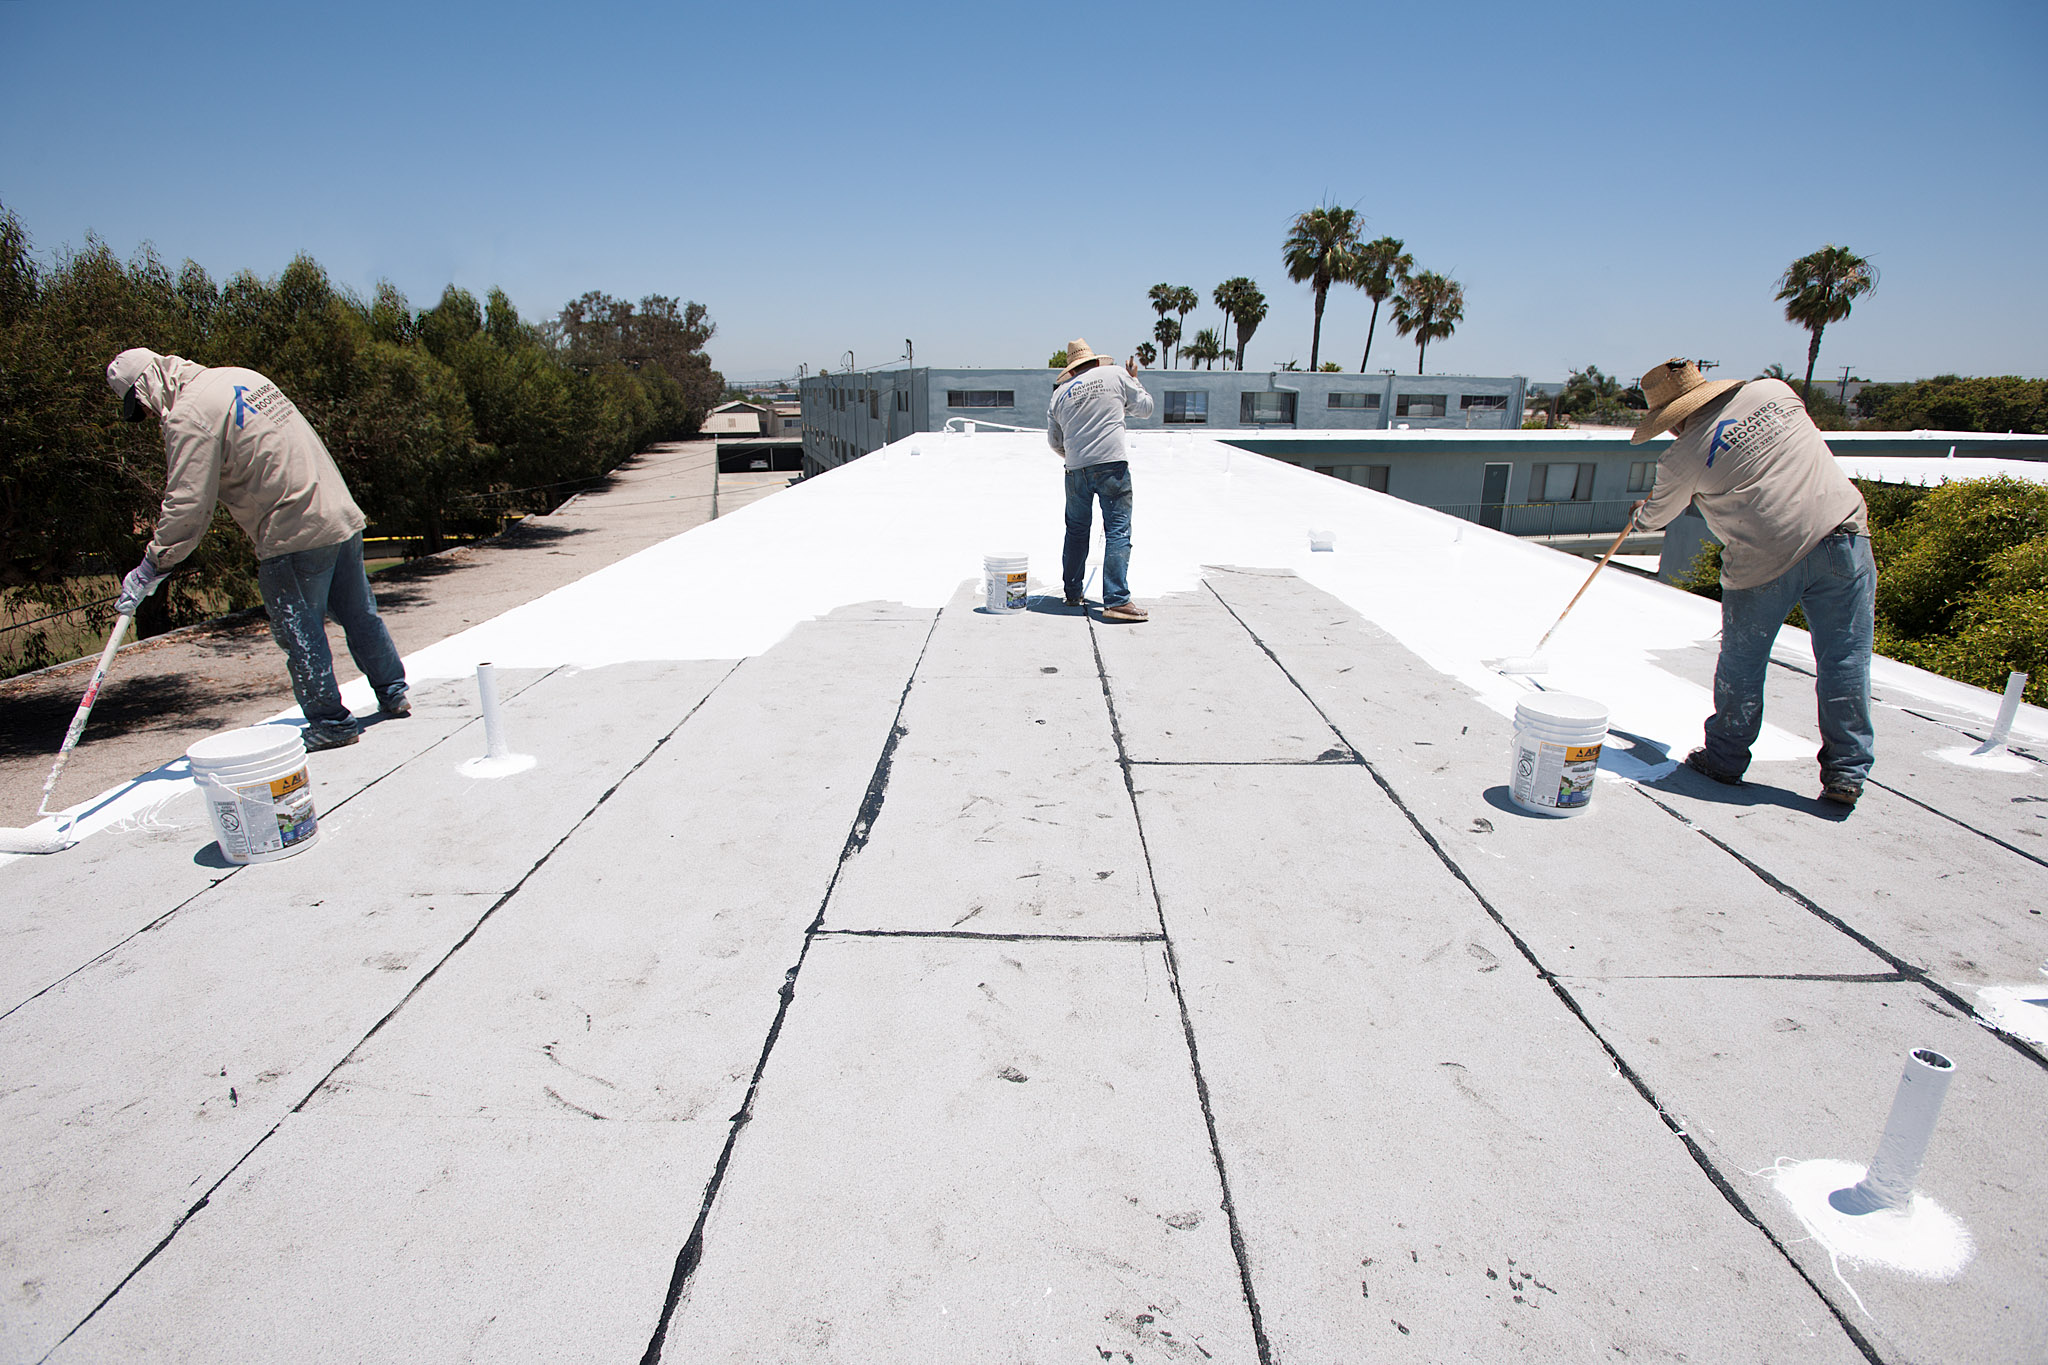 Cool Roof White Silicon Coating On Apartment Building Torrance